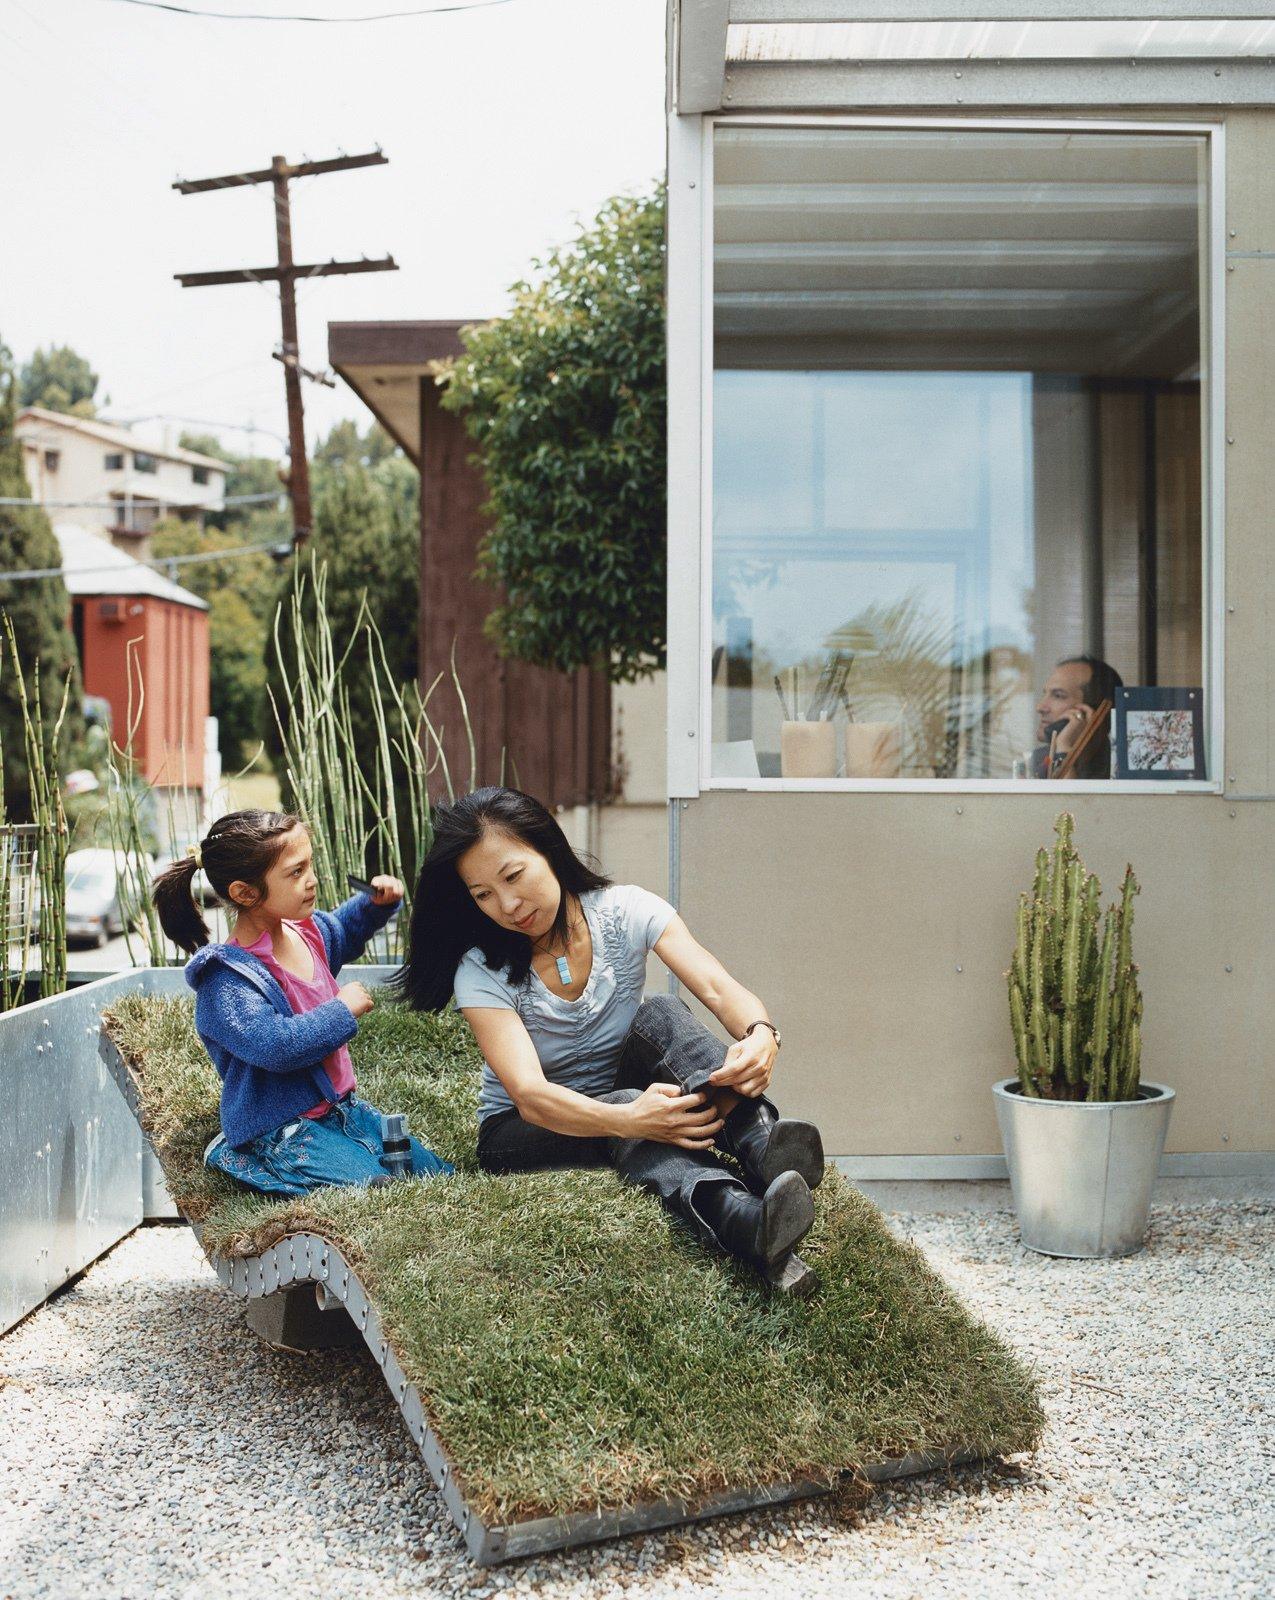 Téa gets mom ready for her close-up on the curvy nature-meets-industry chaise lounge of the architects' own design. The landscaping in front and out back is characterized by sturdy, resilient, and drought-resistant plants like bamboo and cacti, cultivated in galvanized steel planters.  Photo 5 of 9 in How This Couple Broke The Rules in a LA Suburb